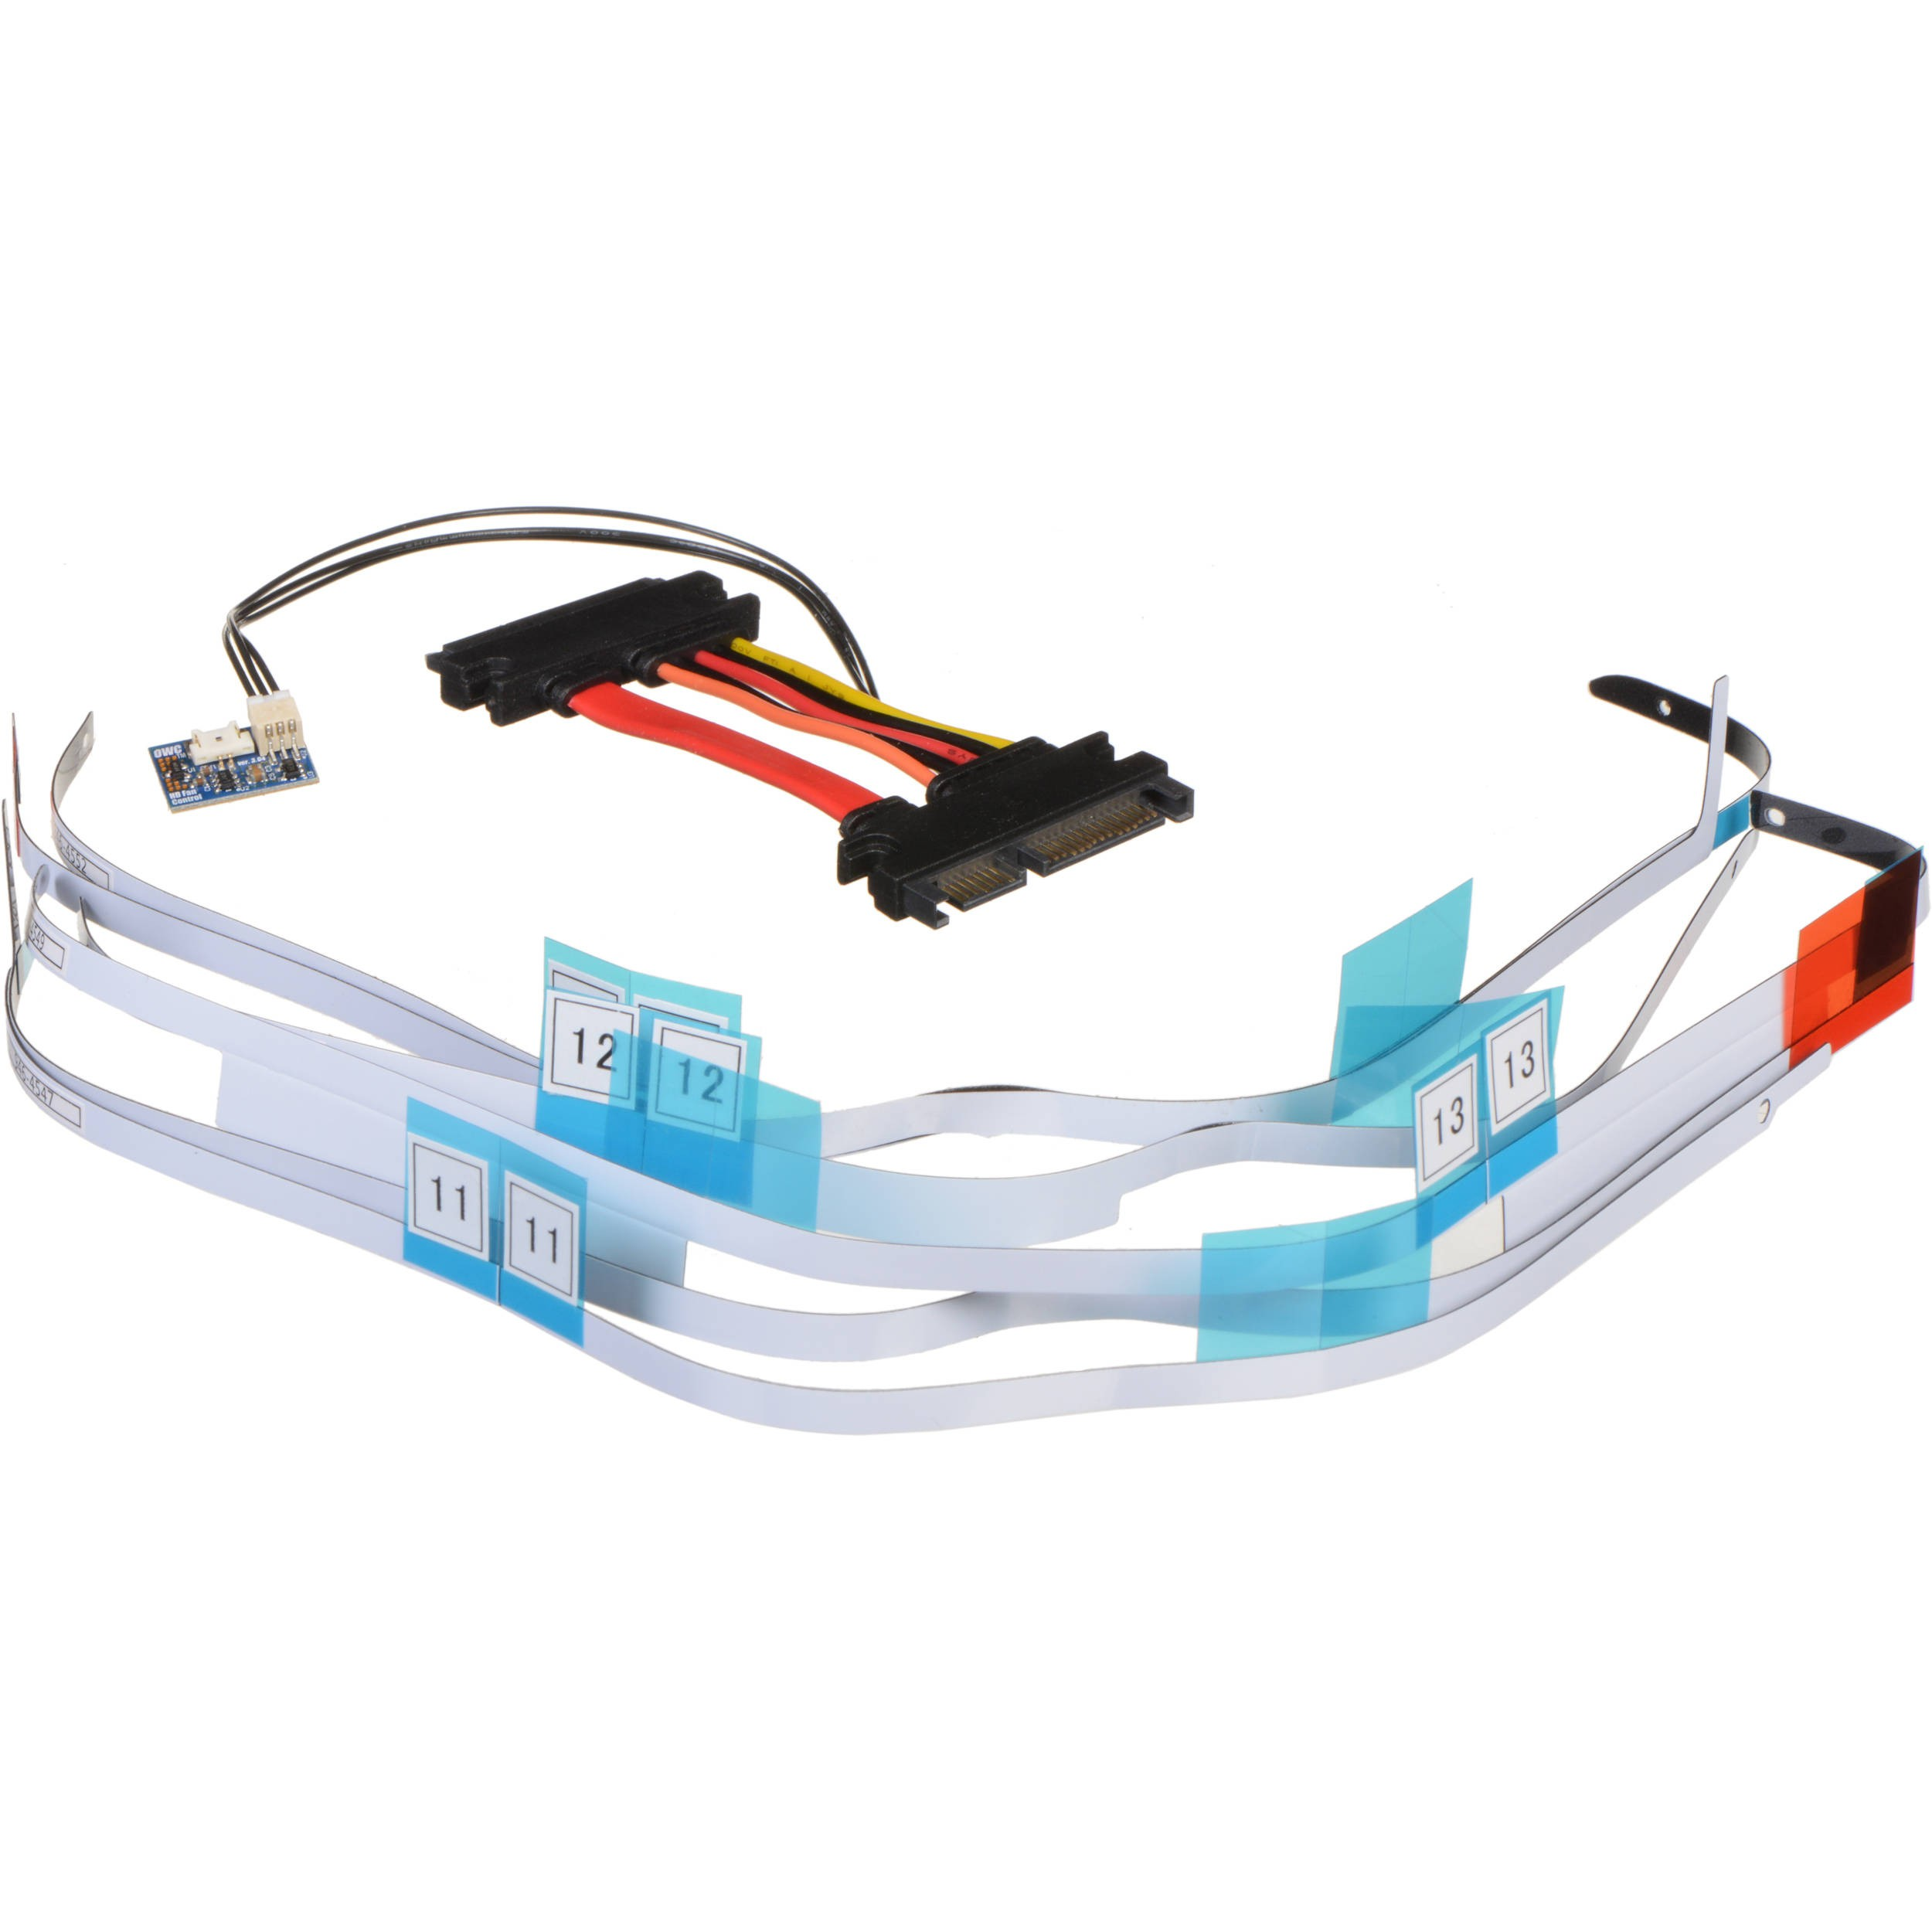 """OWC DIY Kit for all Apple 27"""" iMac 2012 and later Models for replacing the main hard drive - No Tools, OWCDIDIMACHDD12"""